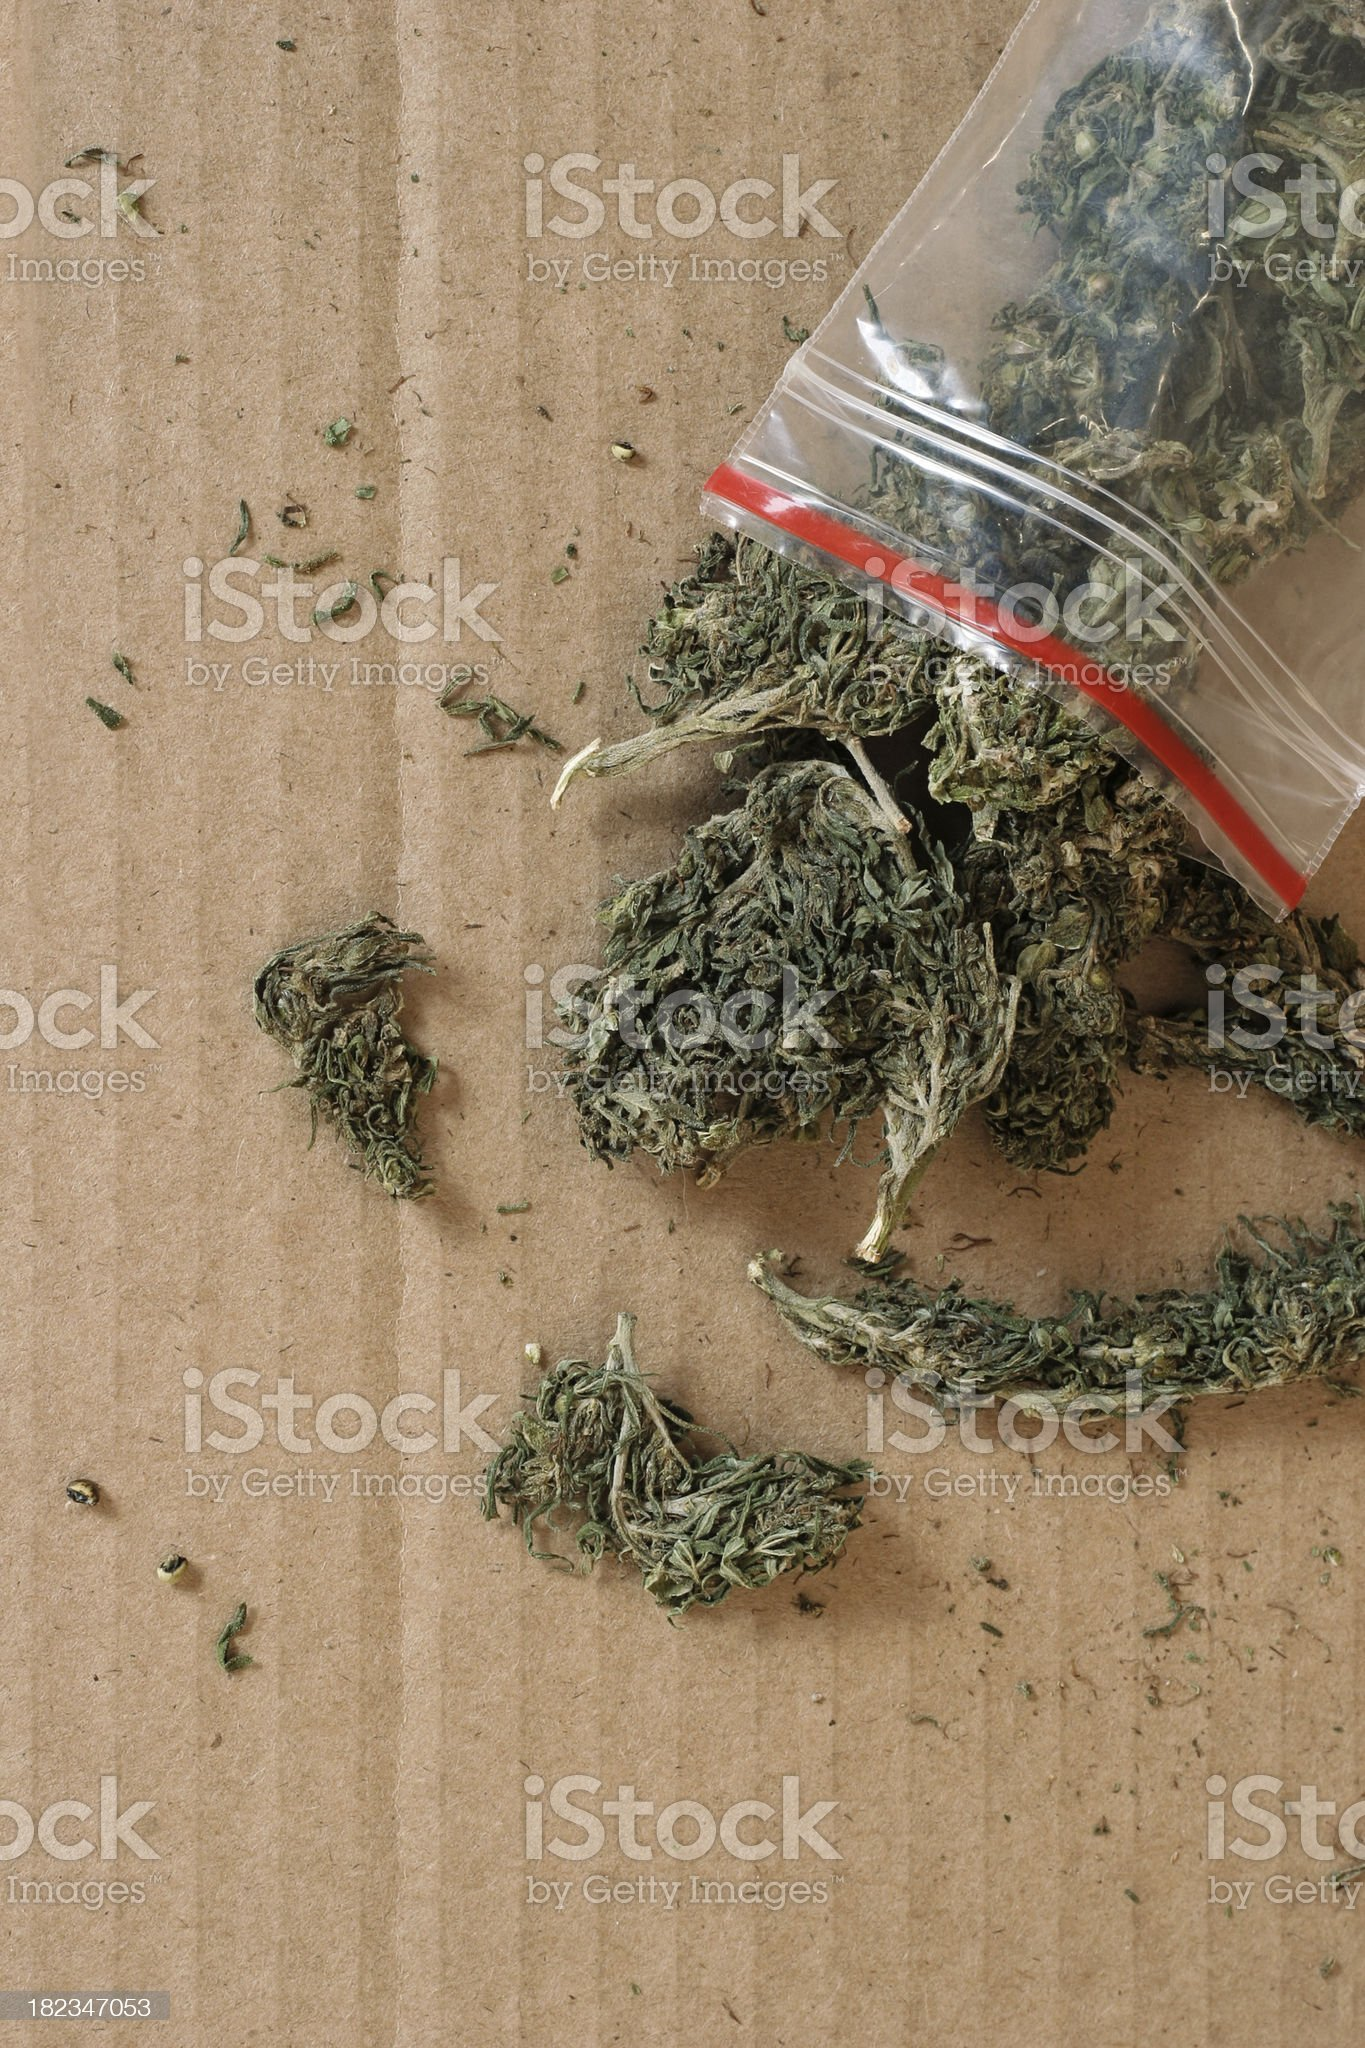 canabis buds from a plastic bank bag on cardboard royalty-free stock photo